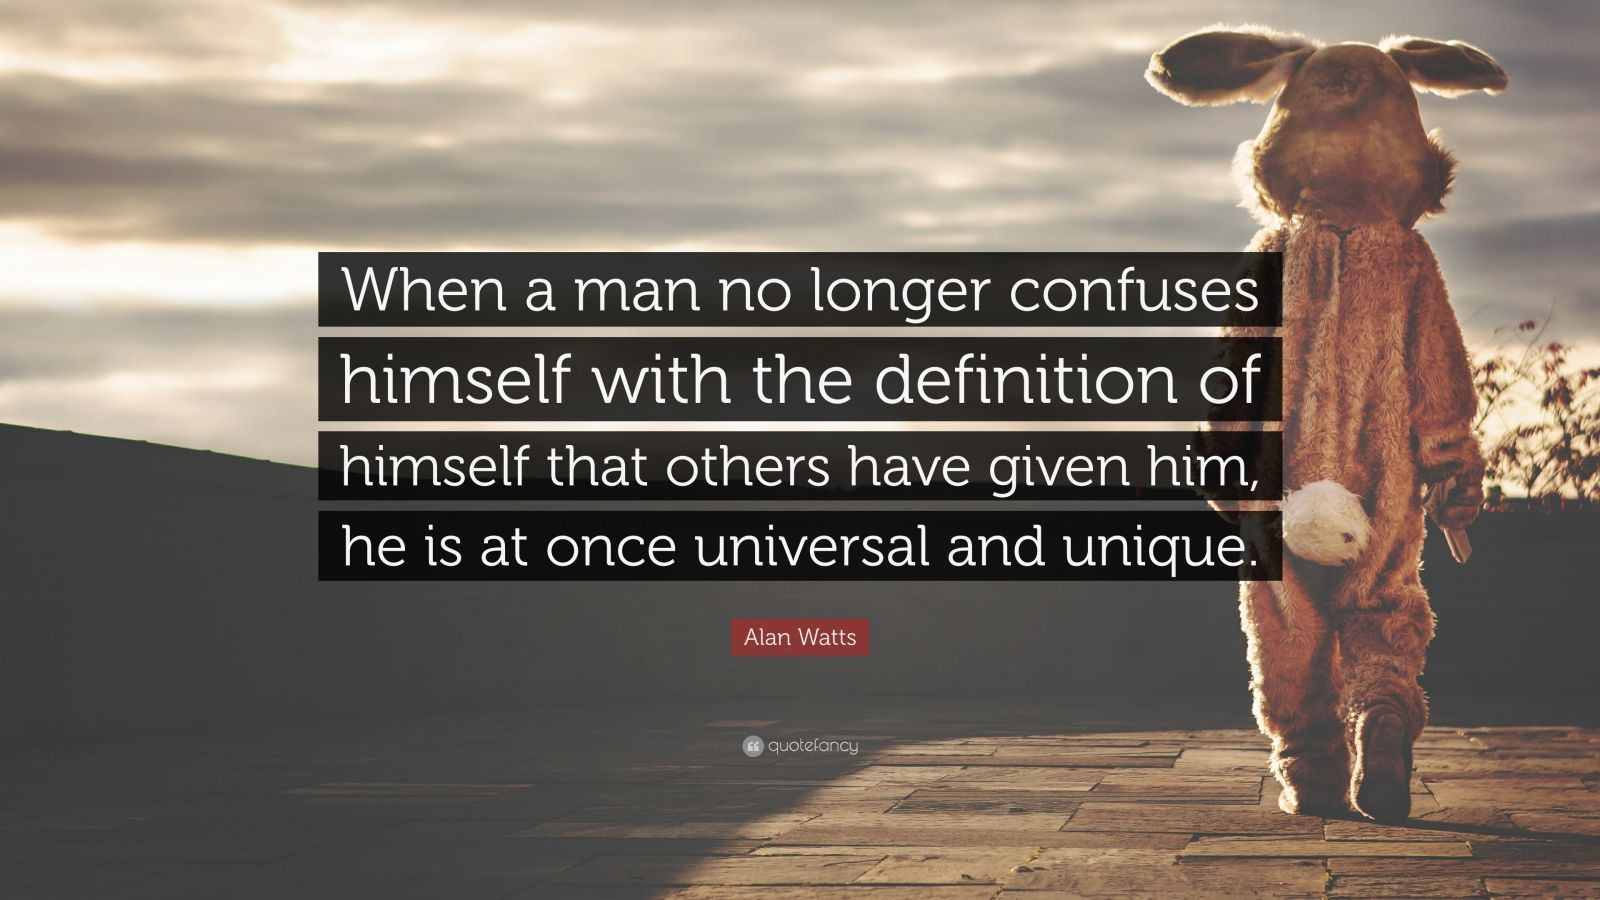 """Alan Watts Quote: """"When a man no longer confuses himself with the definition of himself that others have given him, he is at once universal and unique."""""""